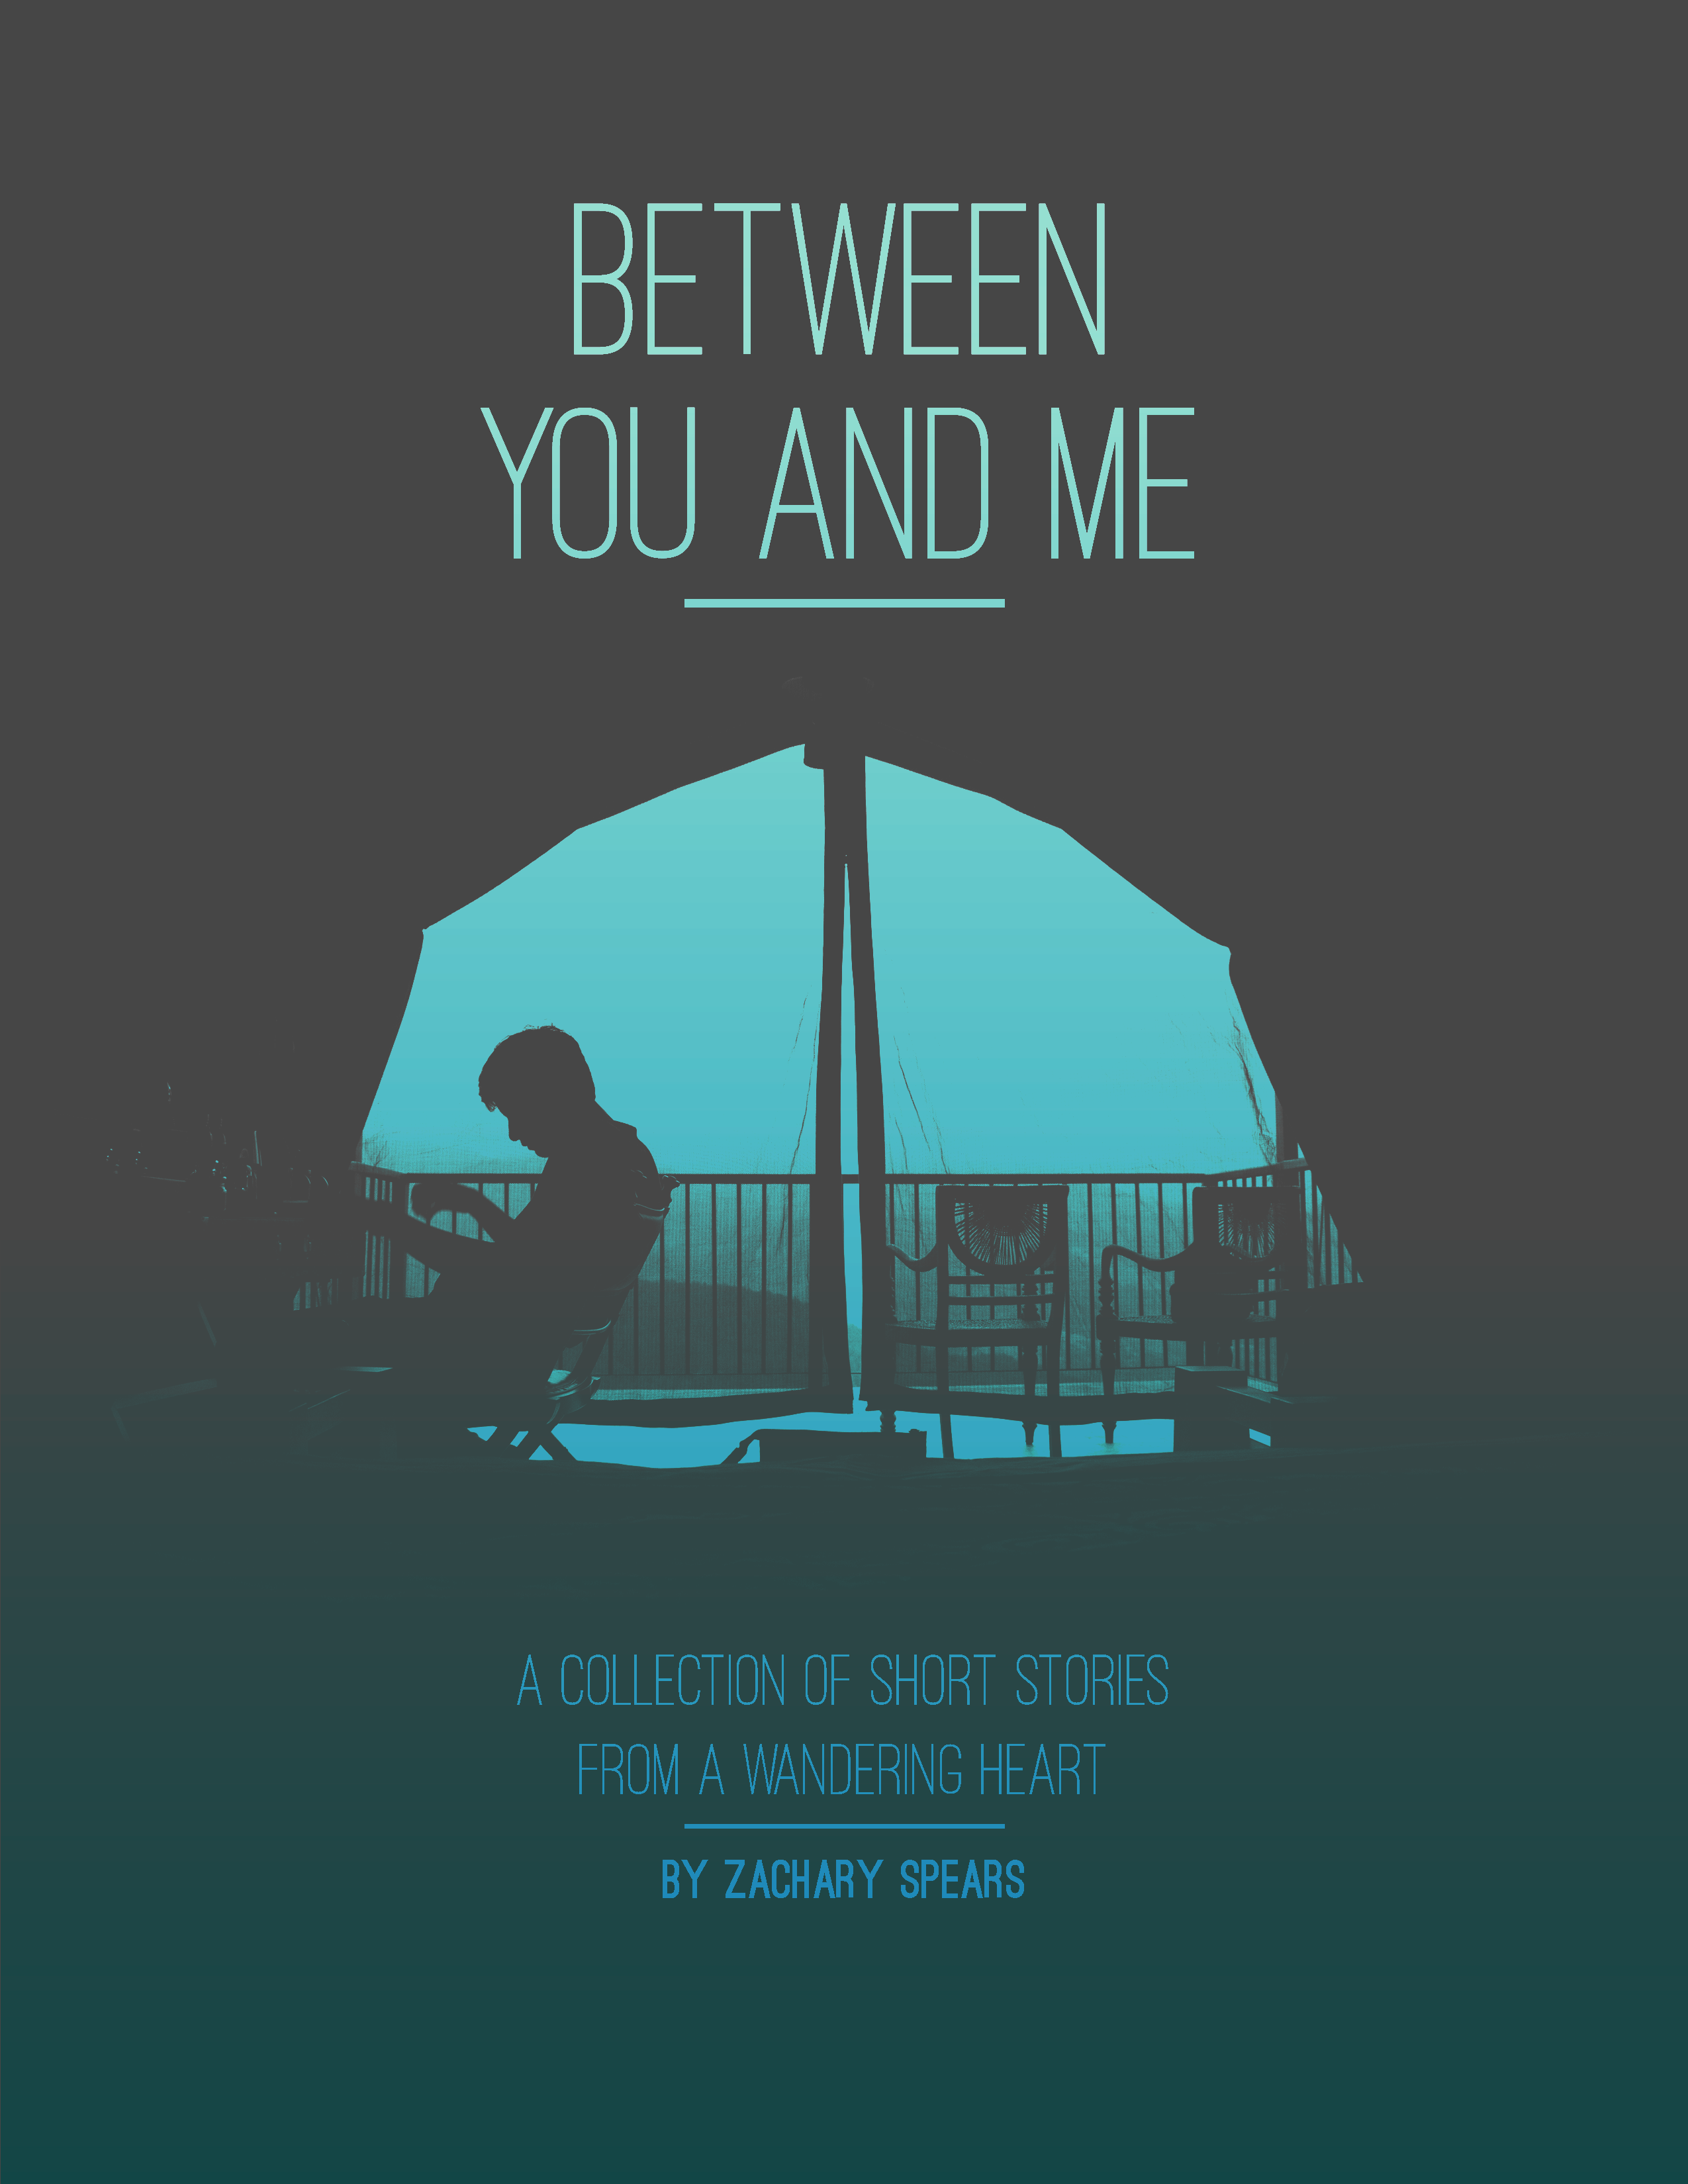 Between You and Me Book Cover Design